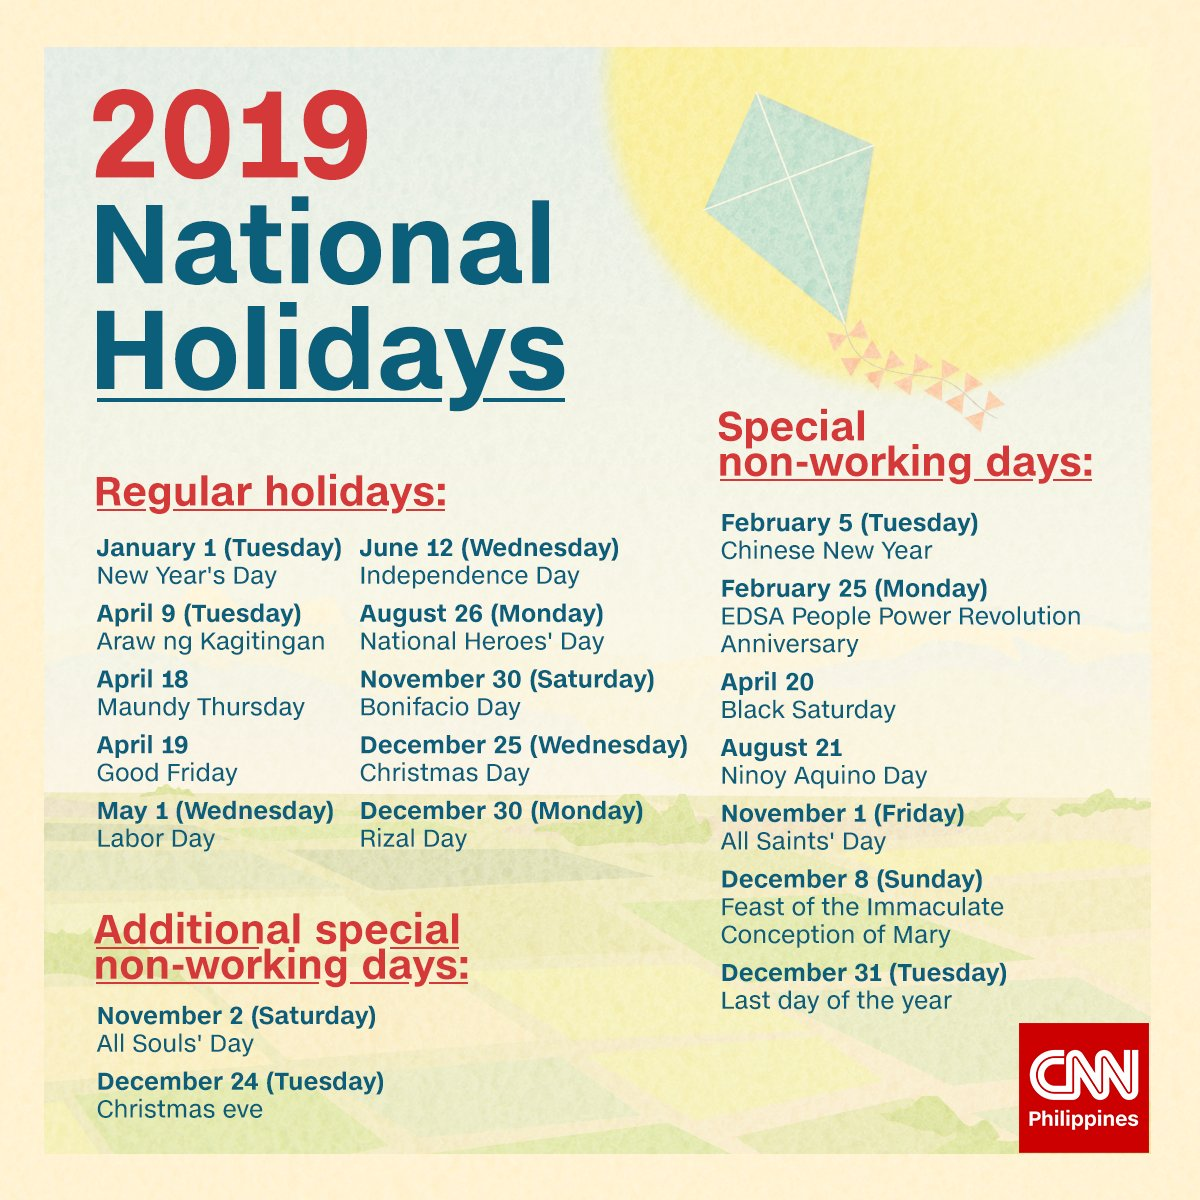 Cnn Philippines Auf Twitter Laborday Is The Only National Holiday